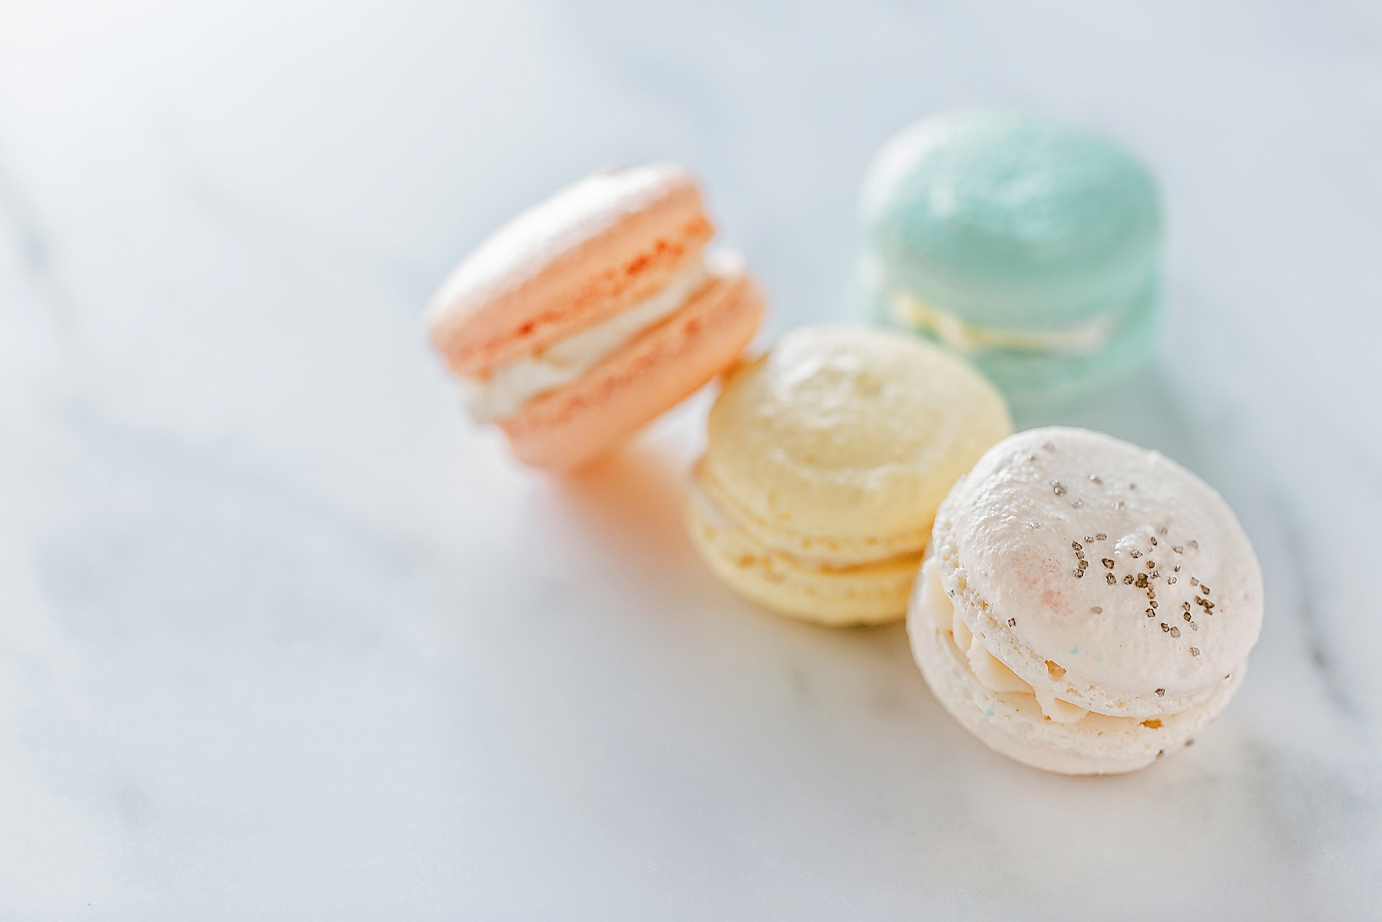 Dallas Food Photographer Flower Mound The Flour Shop French Macarons Kate Marie Portraiture 3.png